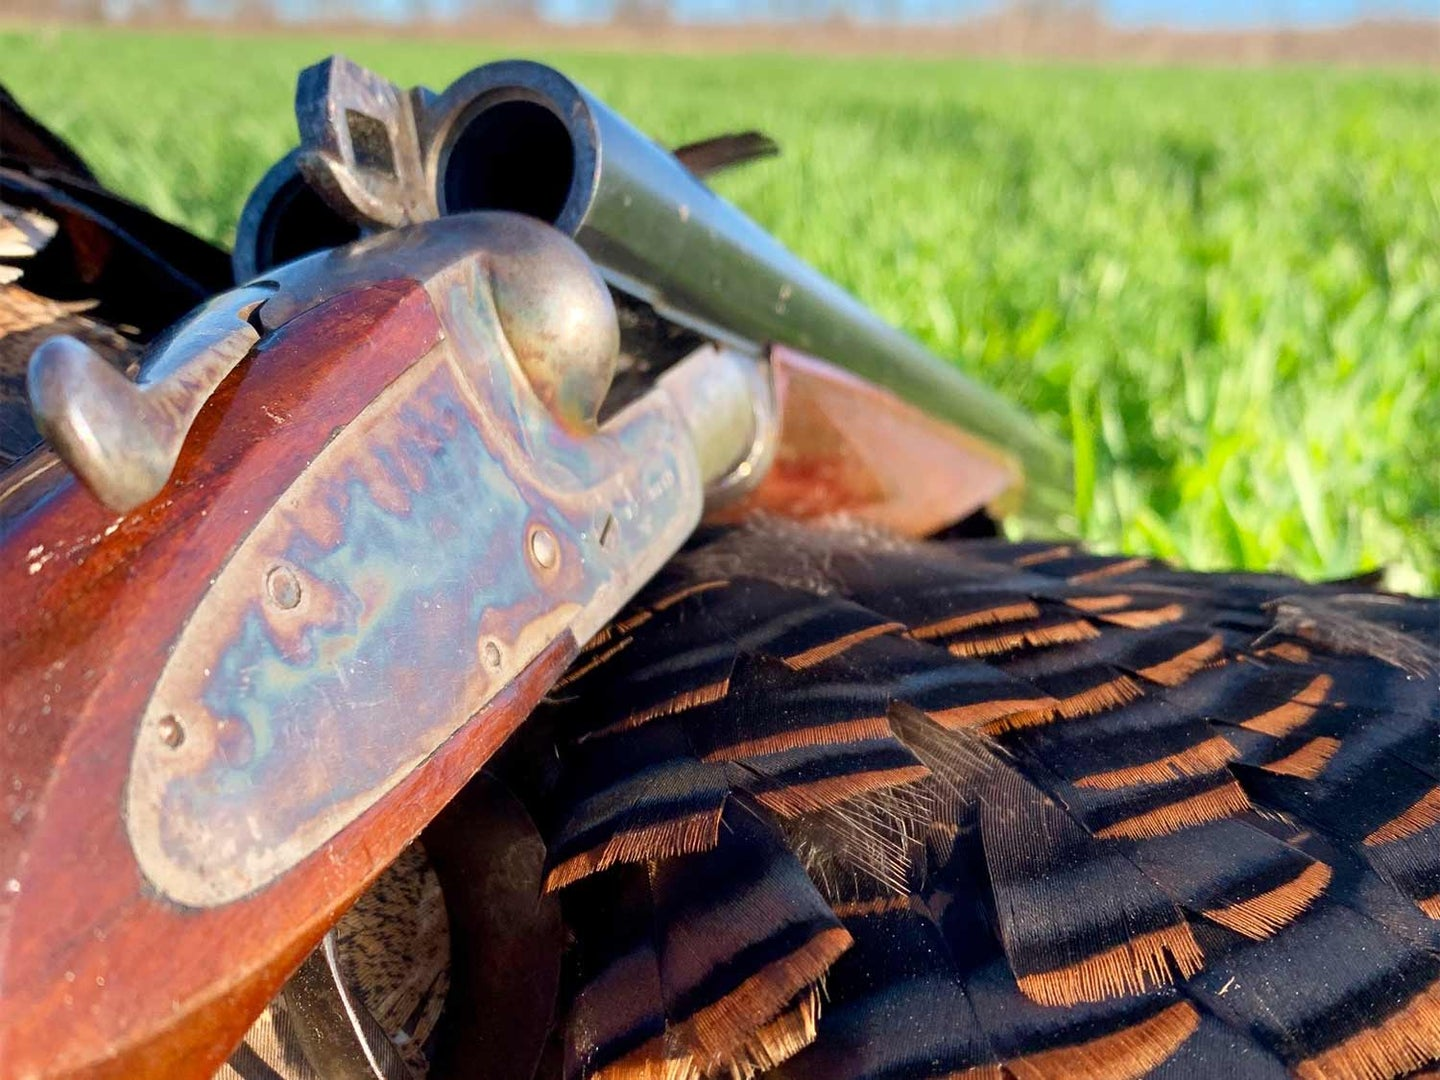 How to Know Whether You Should Restore or Refurbish an Old Hunting Gun